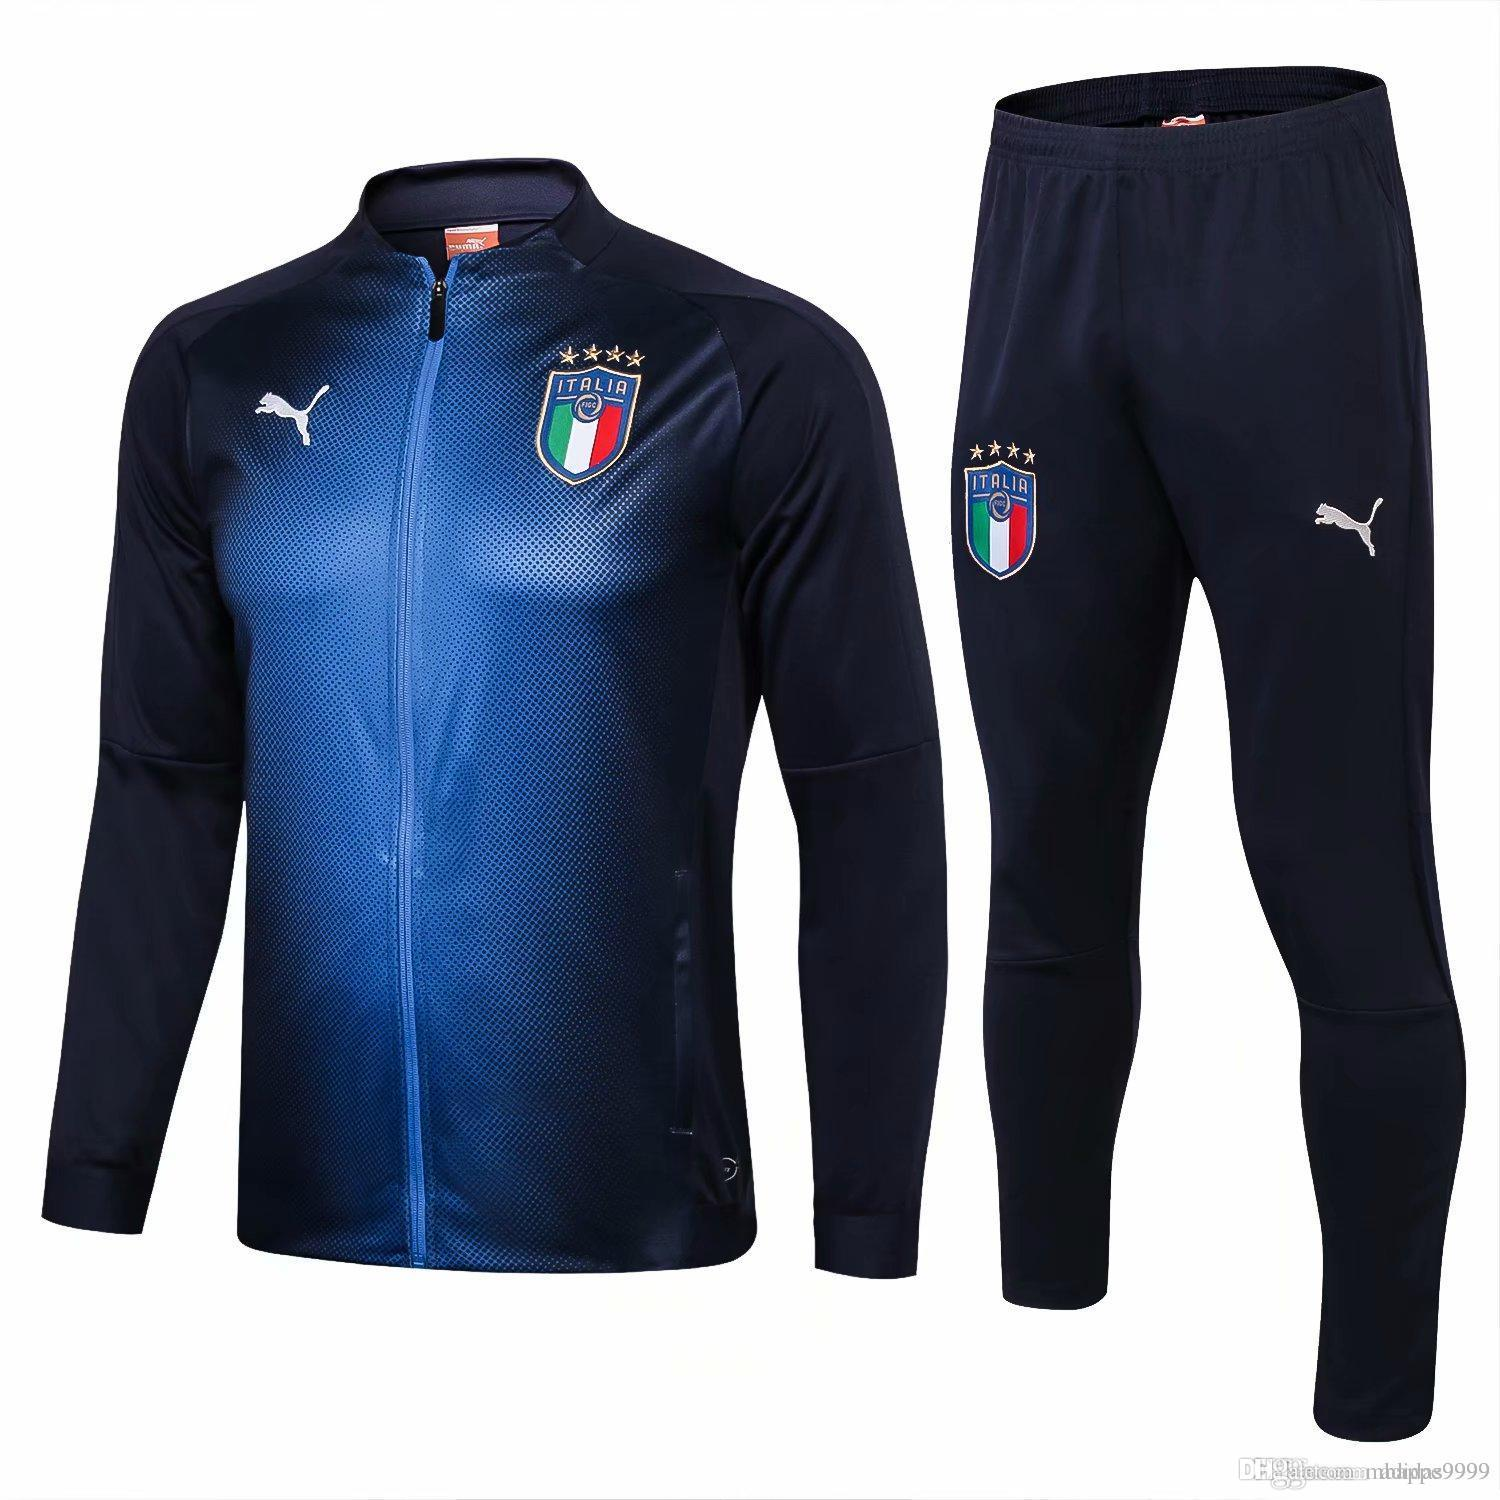 From Jacket Tracksuit 19 Training INSIGNE Chandal GHIELLINI 2019 ItALY ITALIAN Tracksuit 2018 MARCHISIO Football DE Suit VERRATTI Tracksuit 18 ROSSI zHBxSgxw